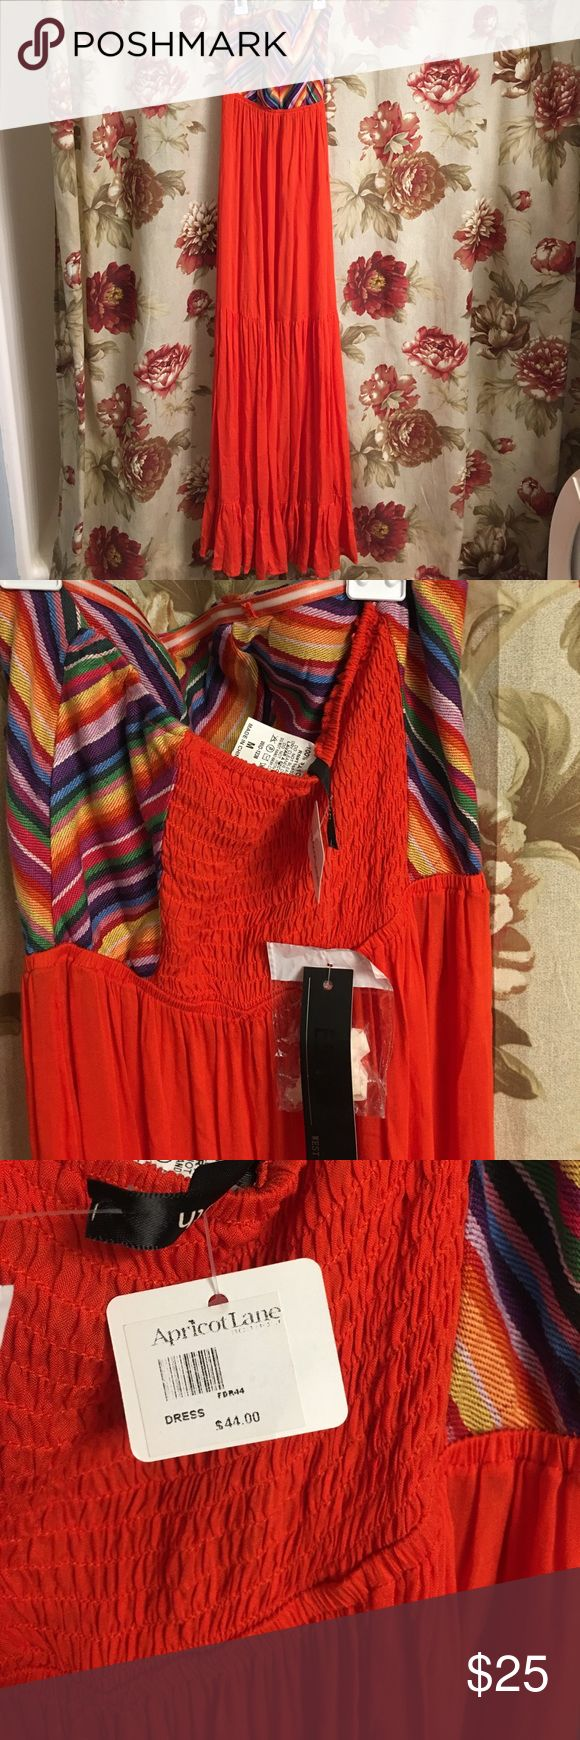 BRand new maxi dress Brand new with tags orange and striped maxi dress.  100% Rayon bought at a local boutique - Apricot Lane and never worn size medium apricot lane Dresses Maxi